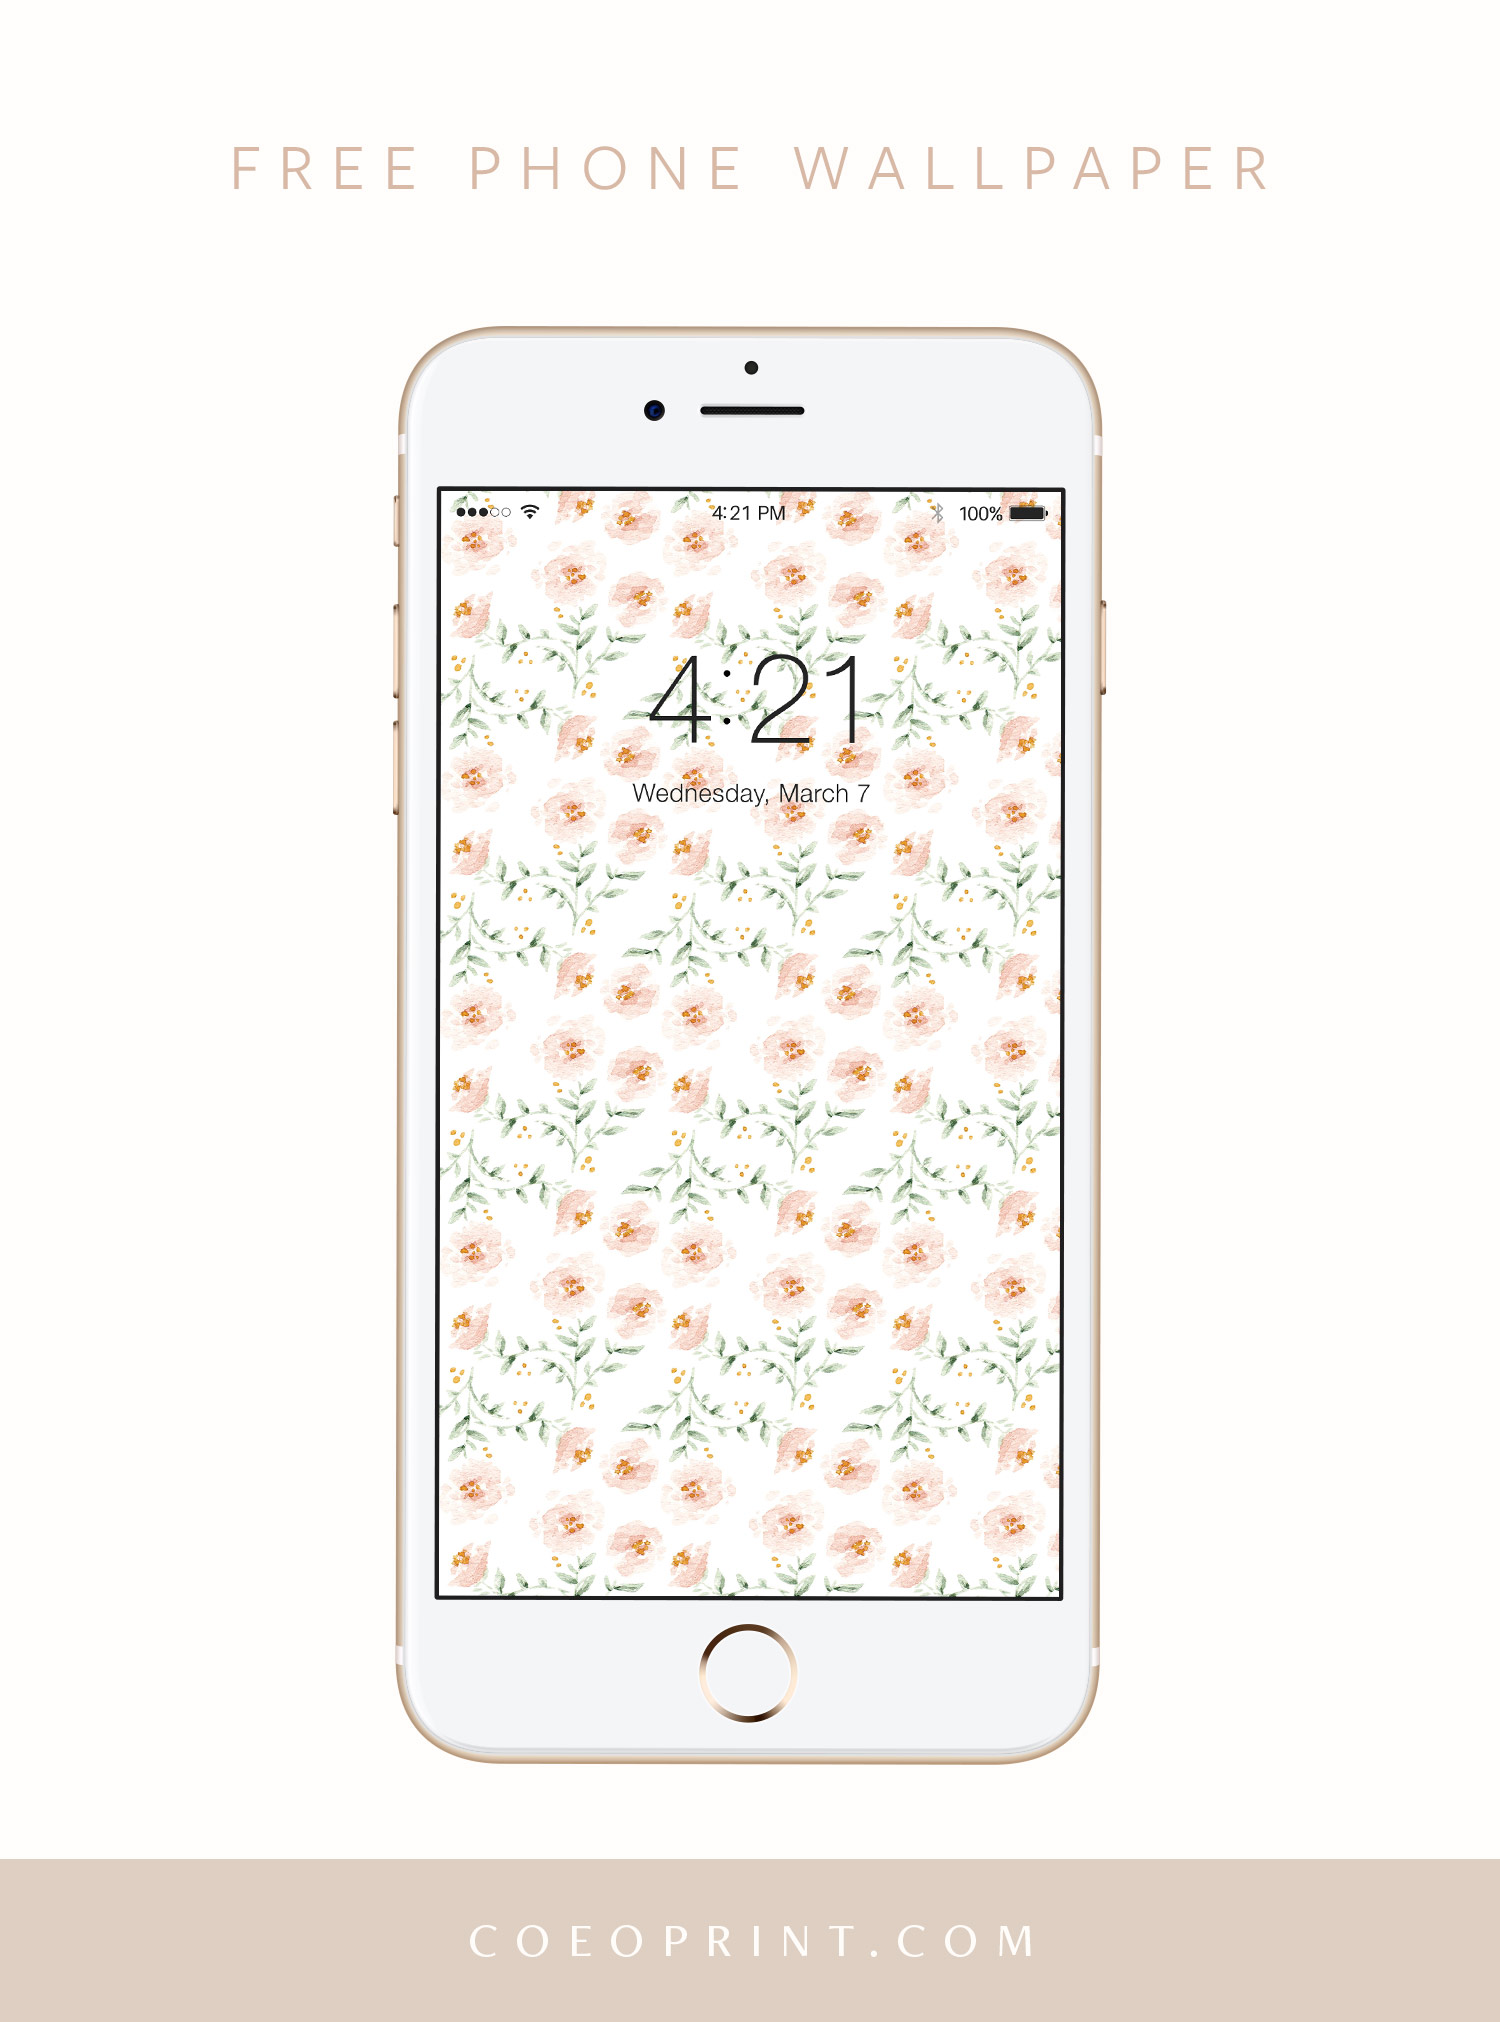 Coeo Print Company Free Phone Wallpaper Summer Florals